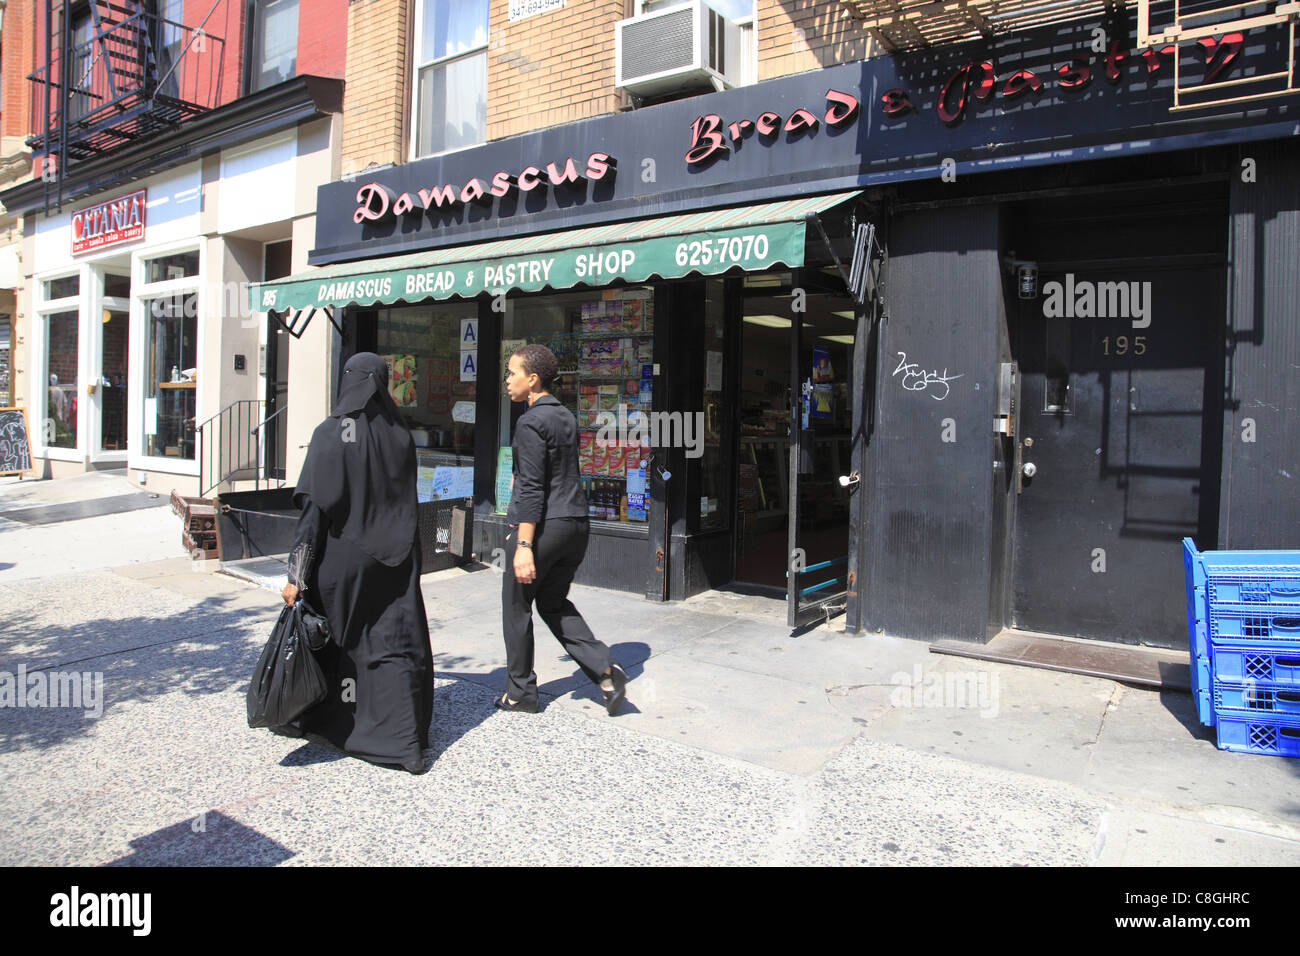 Damascus Bread and Bakery shop, Middle Eastern section of Atlantic Avenue, Cobble Hill, Brooklyn, New York City, - Stock Image